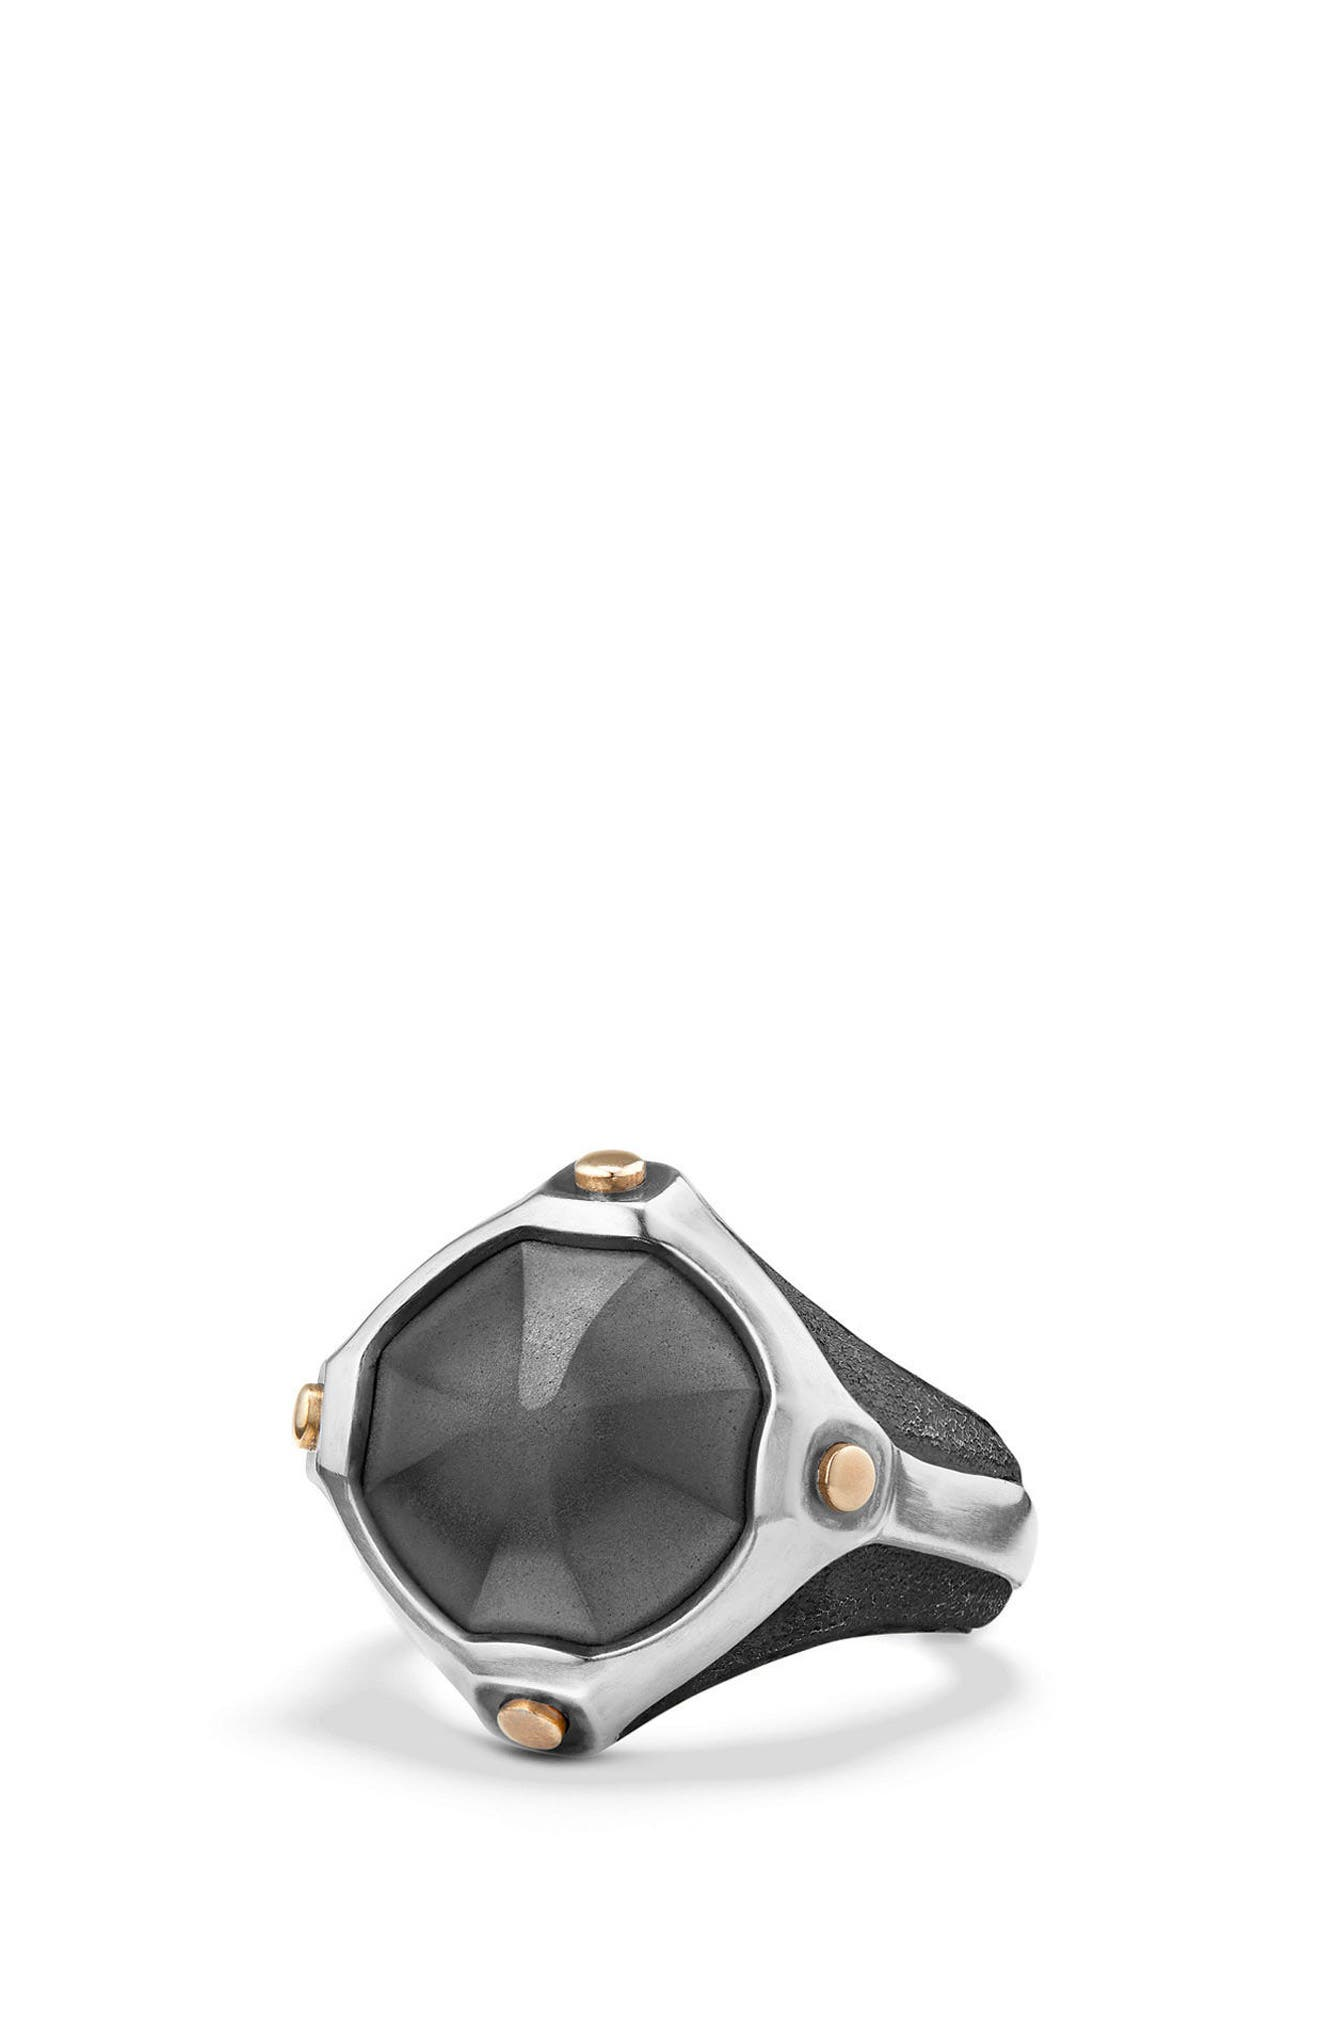 Anvil Signet Ring,                         Main,                         color, Silver/ Bronze/ Hematine